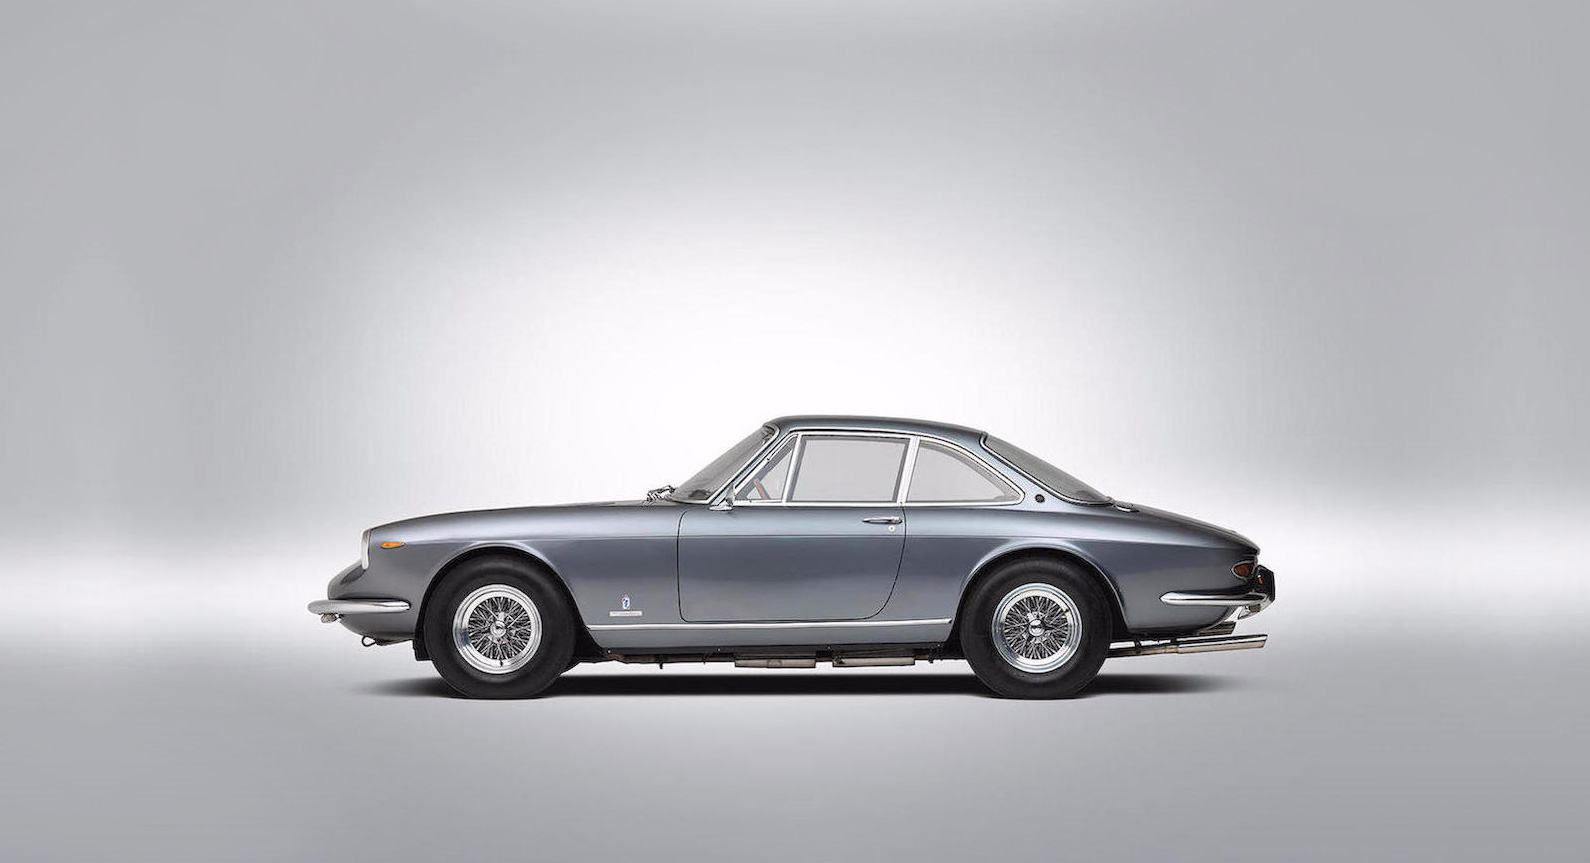 Classic Car Find of the Week: 1968 Ferrari 365 GTC Coupe